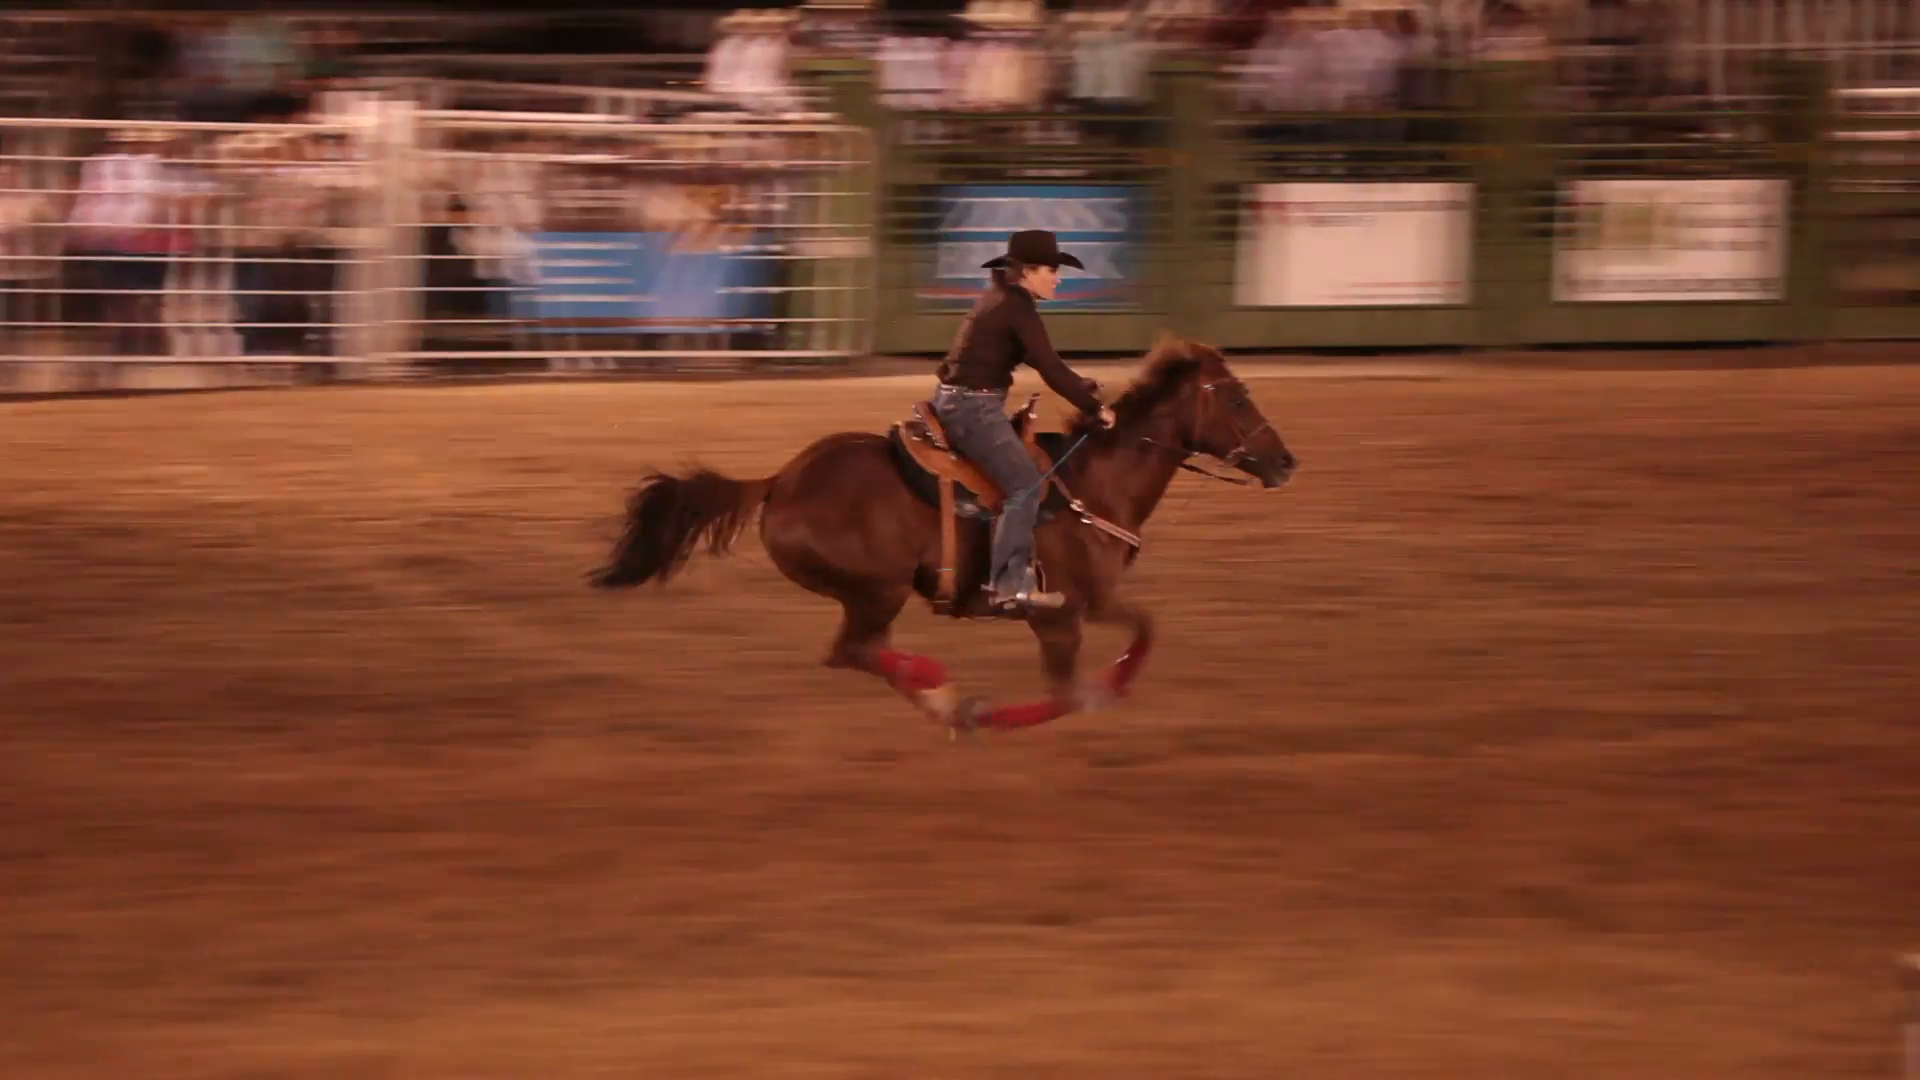 Barrel racing girl rodeo night P HD 9943 Stock Video Footage - VideoBlocks - Rodeo PNG HD